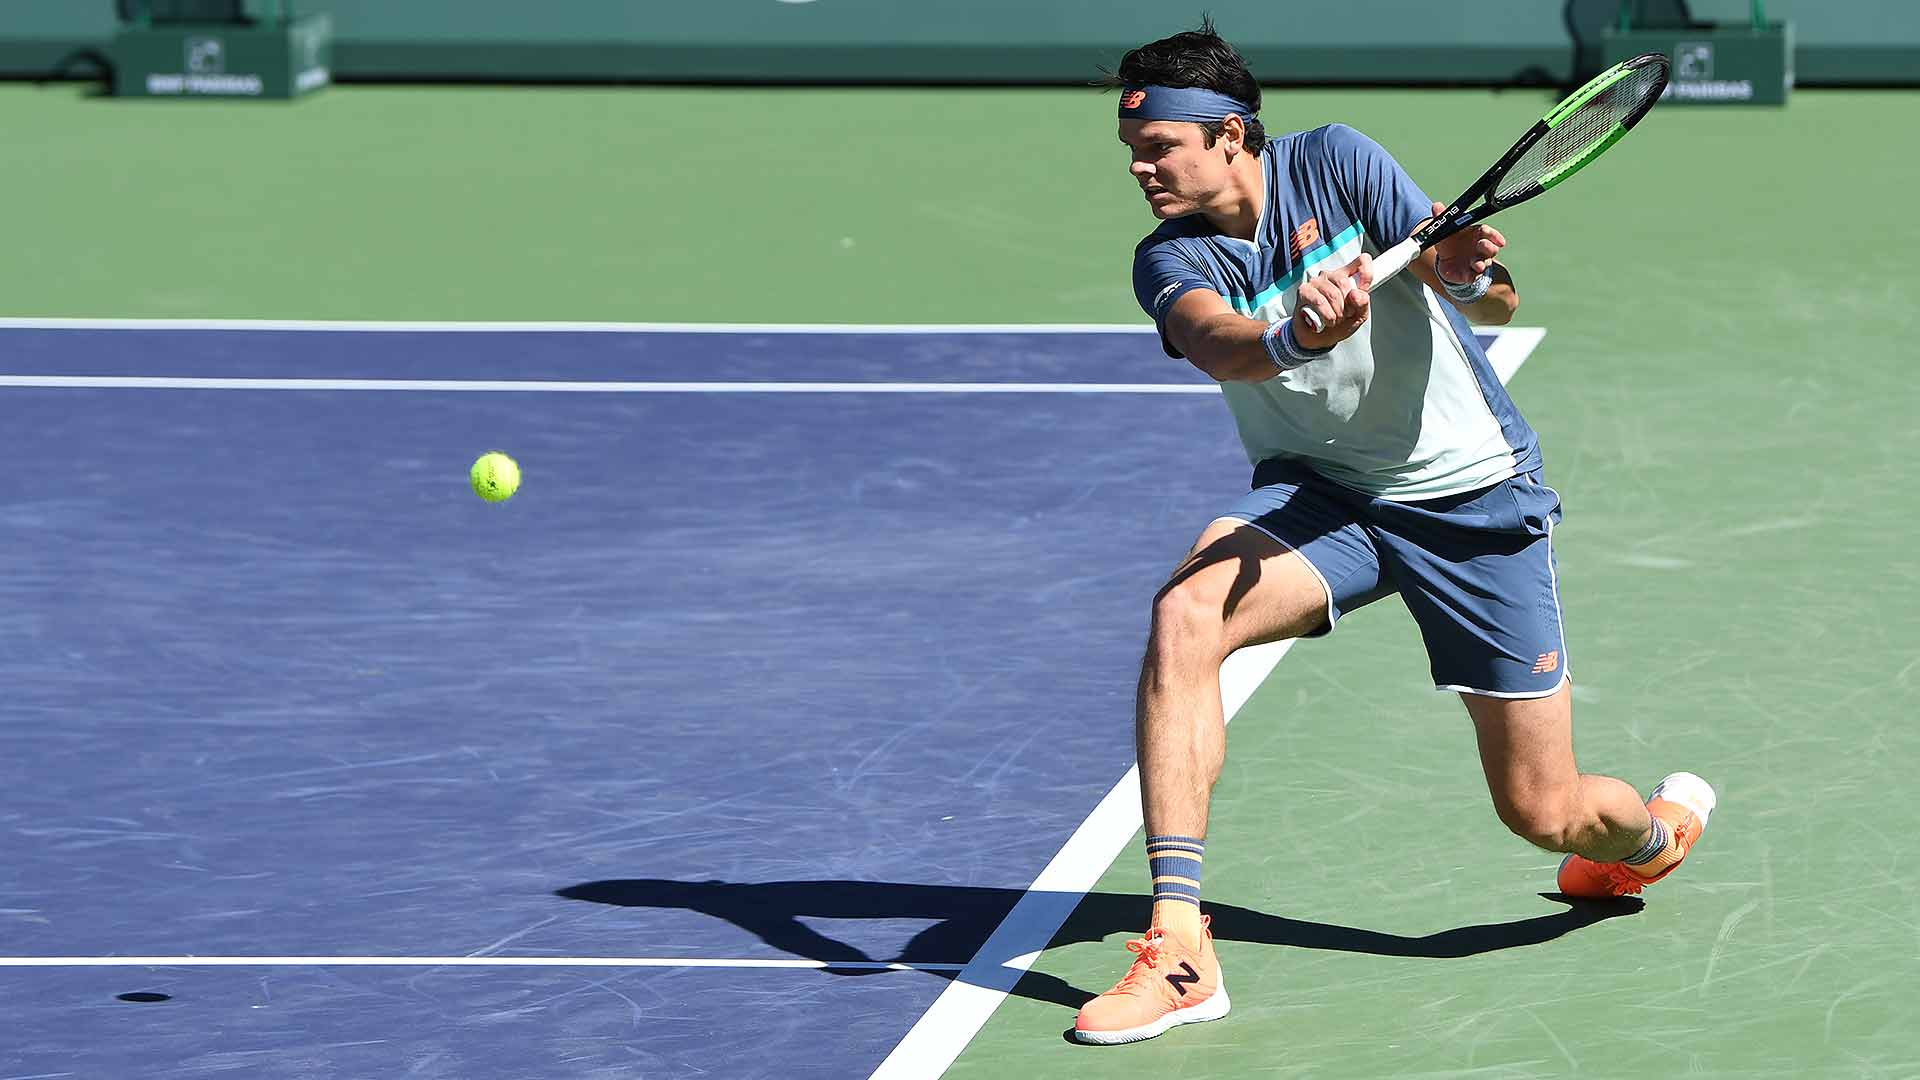 <a href='https://www.atptour.com/en/players/milos-raonic/r975/overview'>Milos Raonic</a> has been using his backhand slice well in Indian Wells